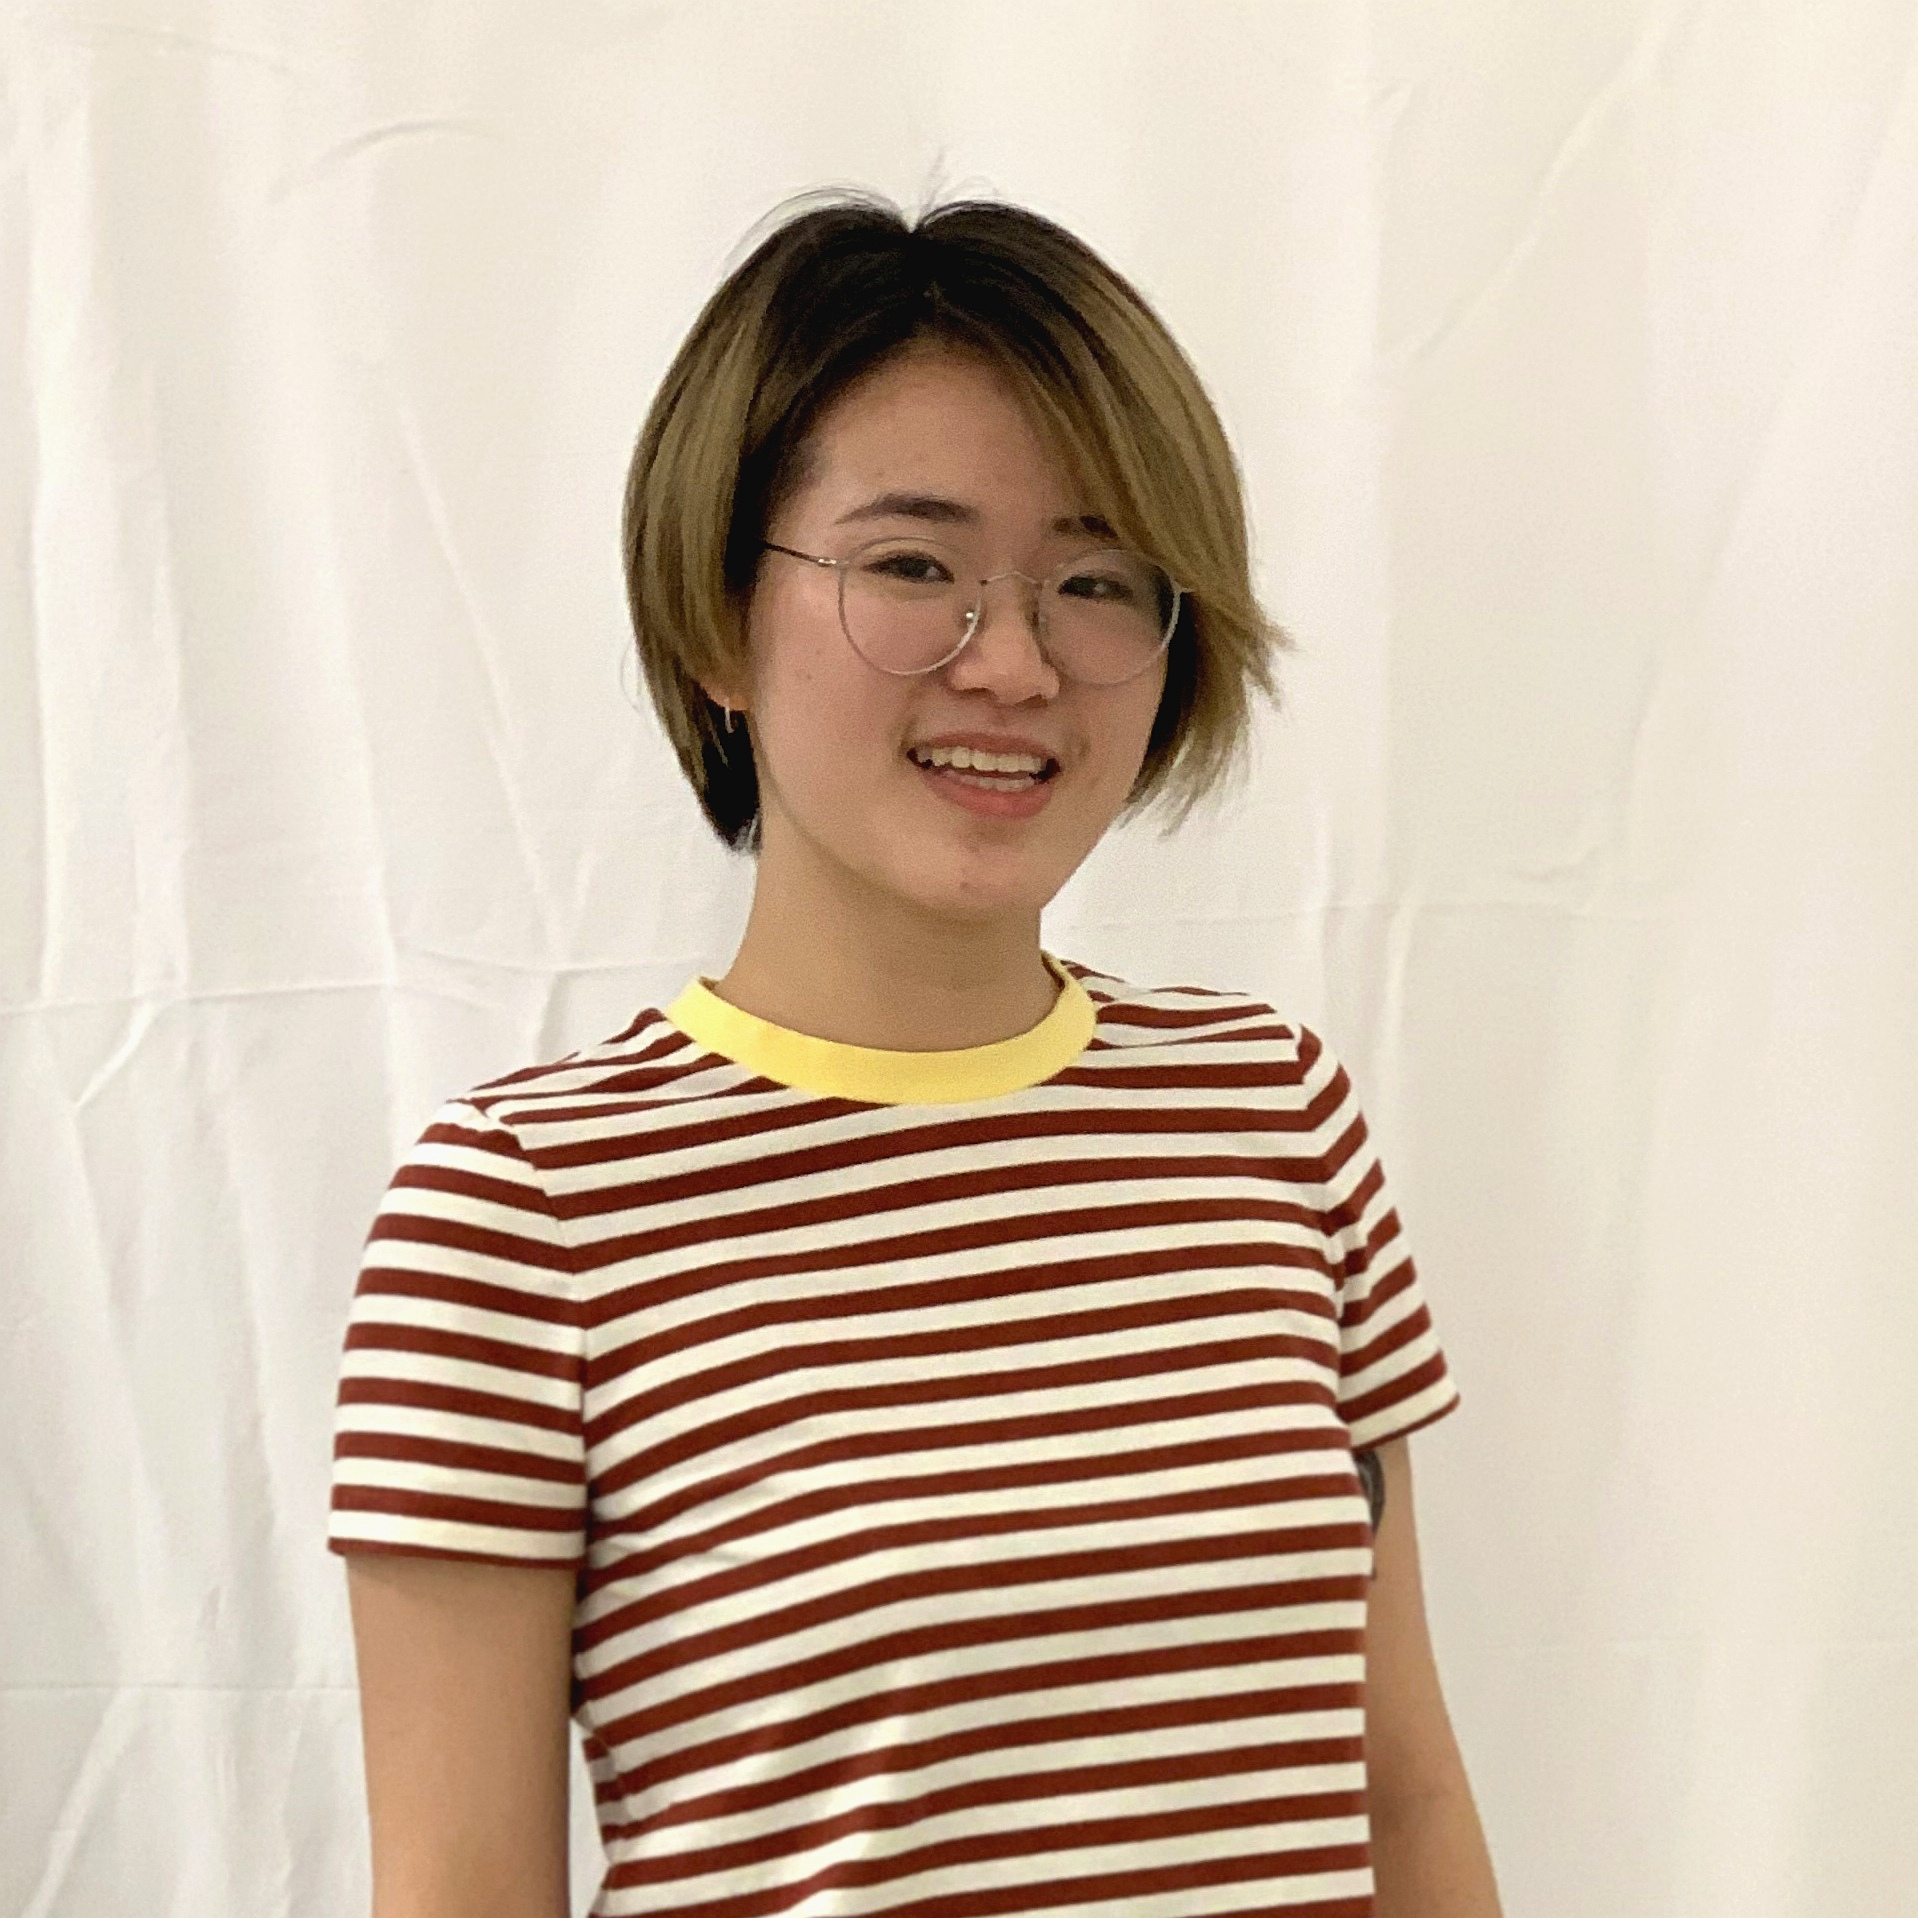 Ingrid is a current senior at Wooster School, Danbury, Connecticut. She is a young writer and artist who focuses on raising awareness about social change and cultural identities. She is a Community Studio intern at TILL and will be working alongside ecological fashion designers  Yimin Deng and   Vân Anh  to create garments that are both personal and sustainable. She will be attending Smith College in the fall.